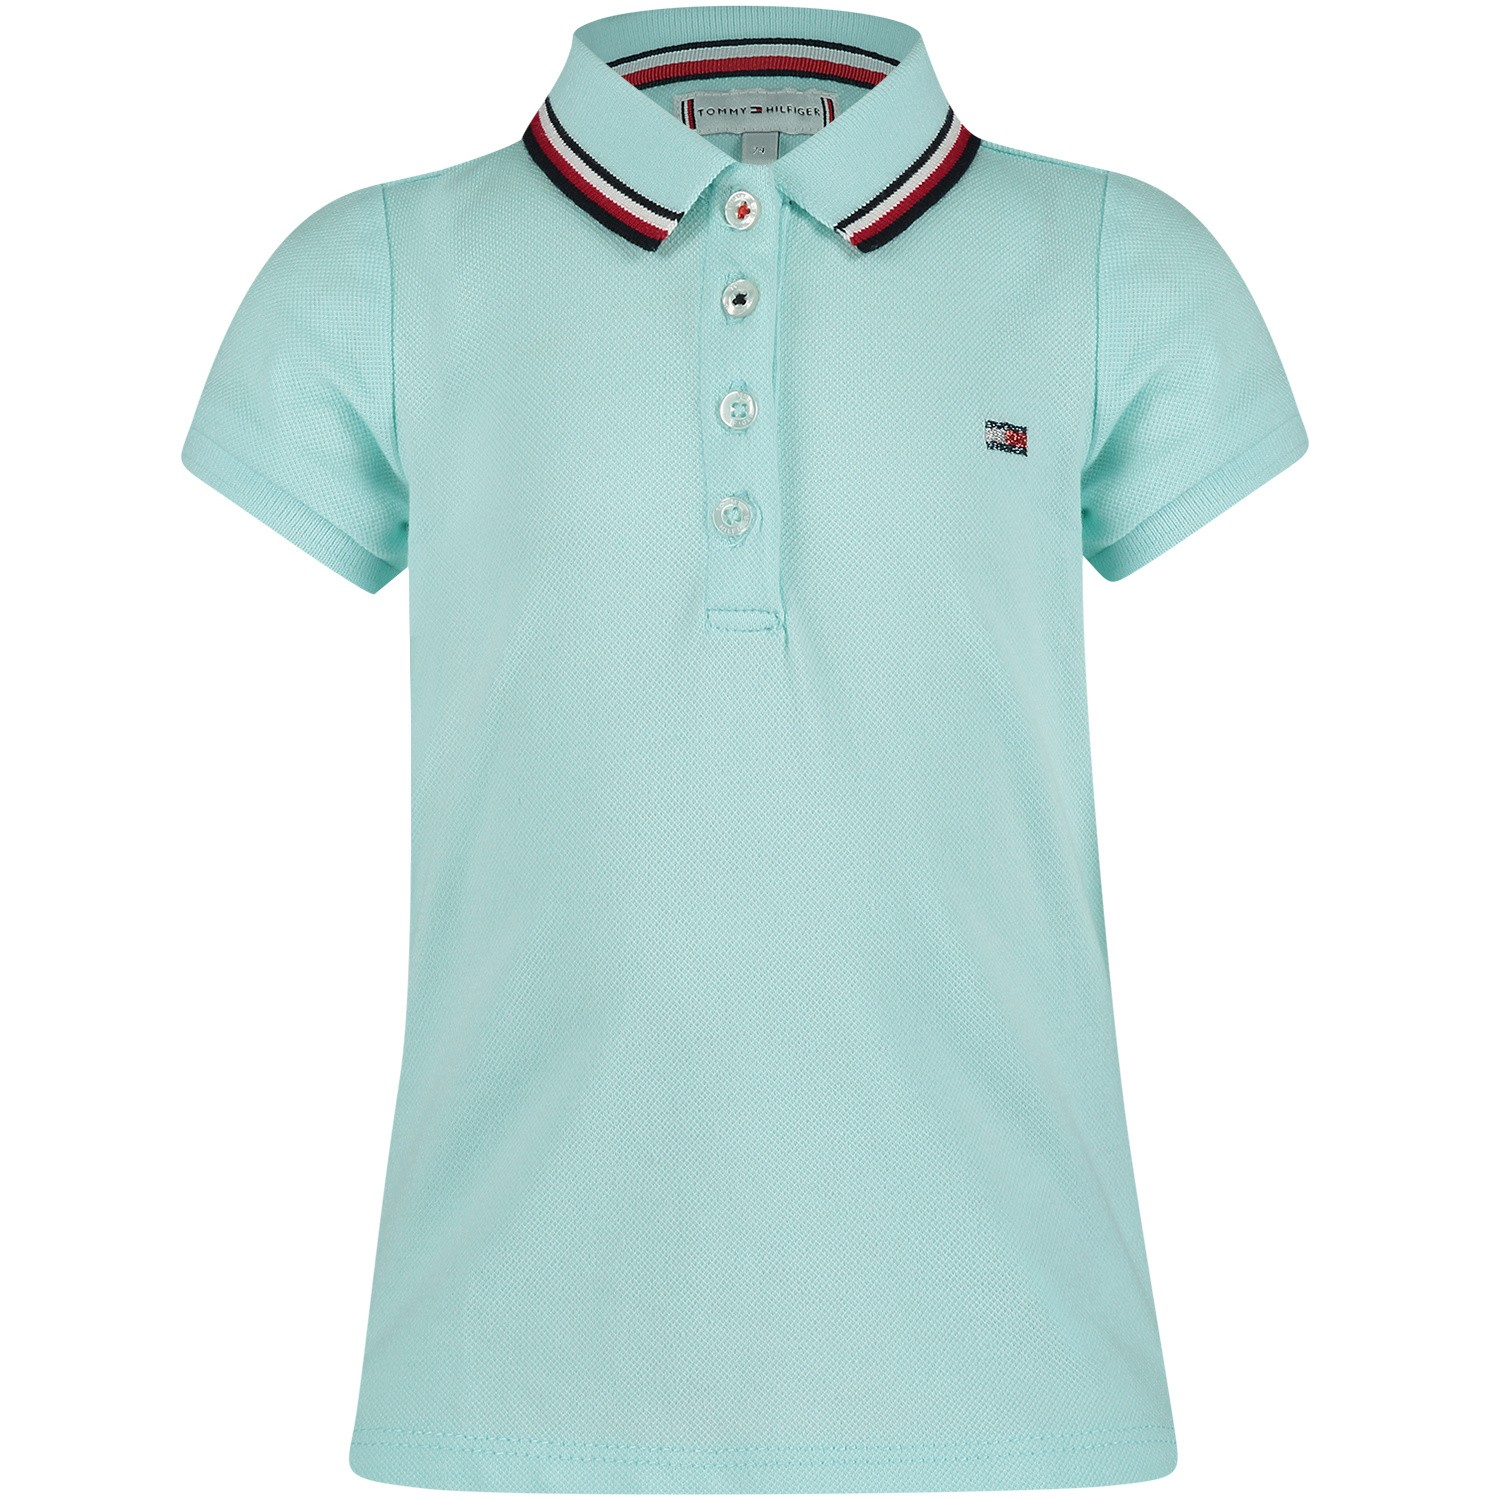 Afbeelding van Tommy Hilfiger KG0KG04222 B baby polo mint